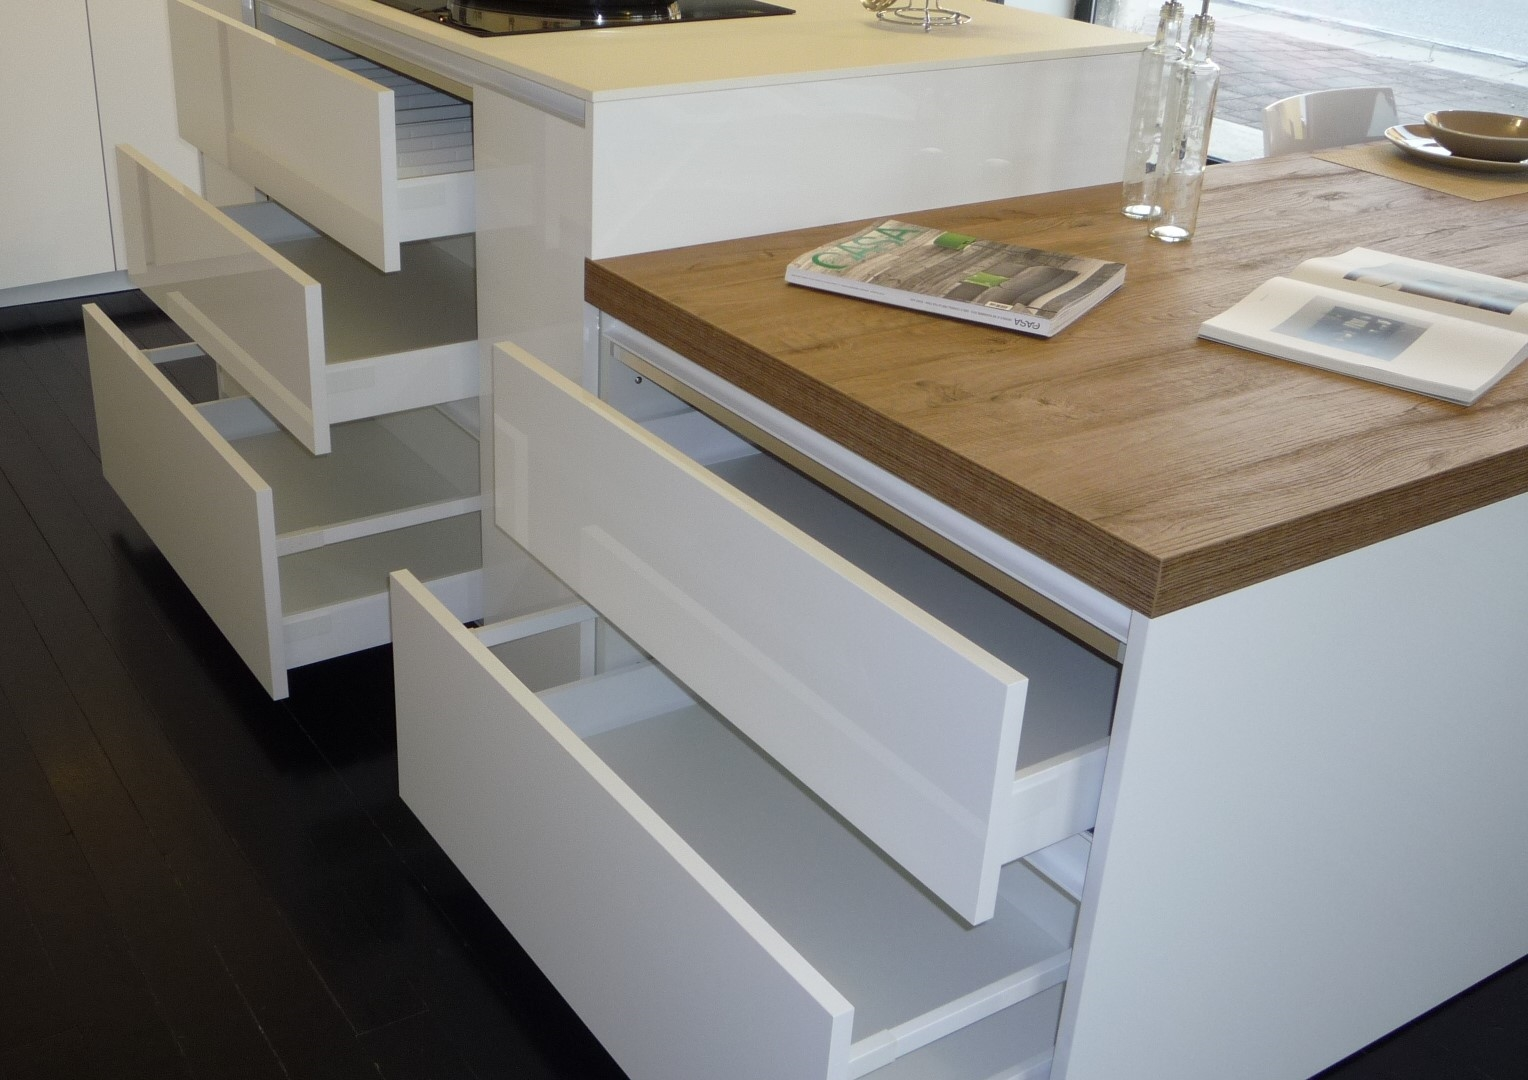 Gentili Cucine Opinioni Pictures - Skilifts.us - skilifts.us